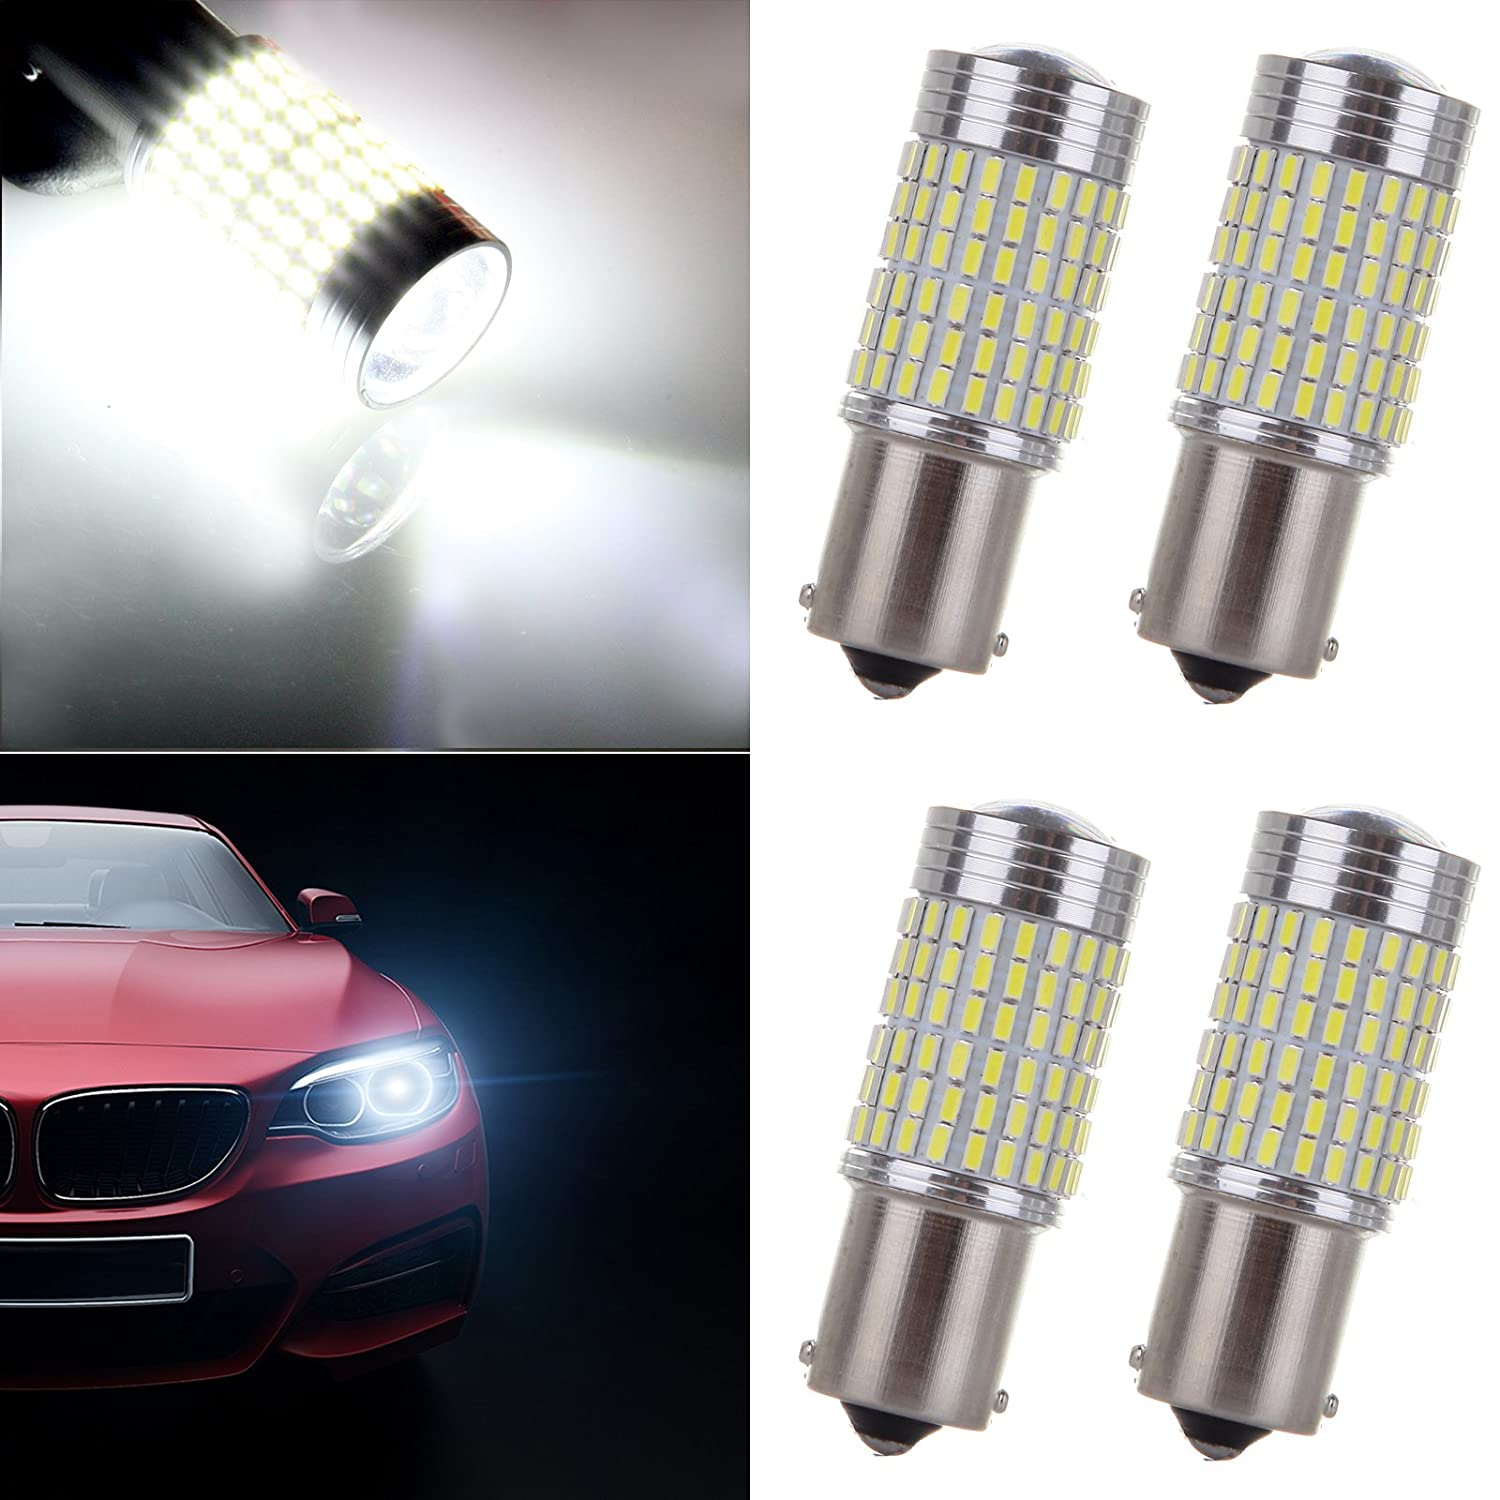 OCPTY 1156 LED Light Bulbs 1141 1073 7506 144-EX Chipsets LED bulb Replacement fit for Back Up Reverse Lights, 4x White 808265-5209-1706131